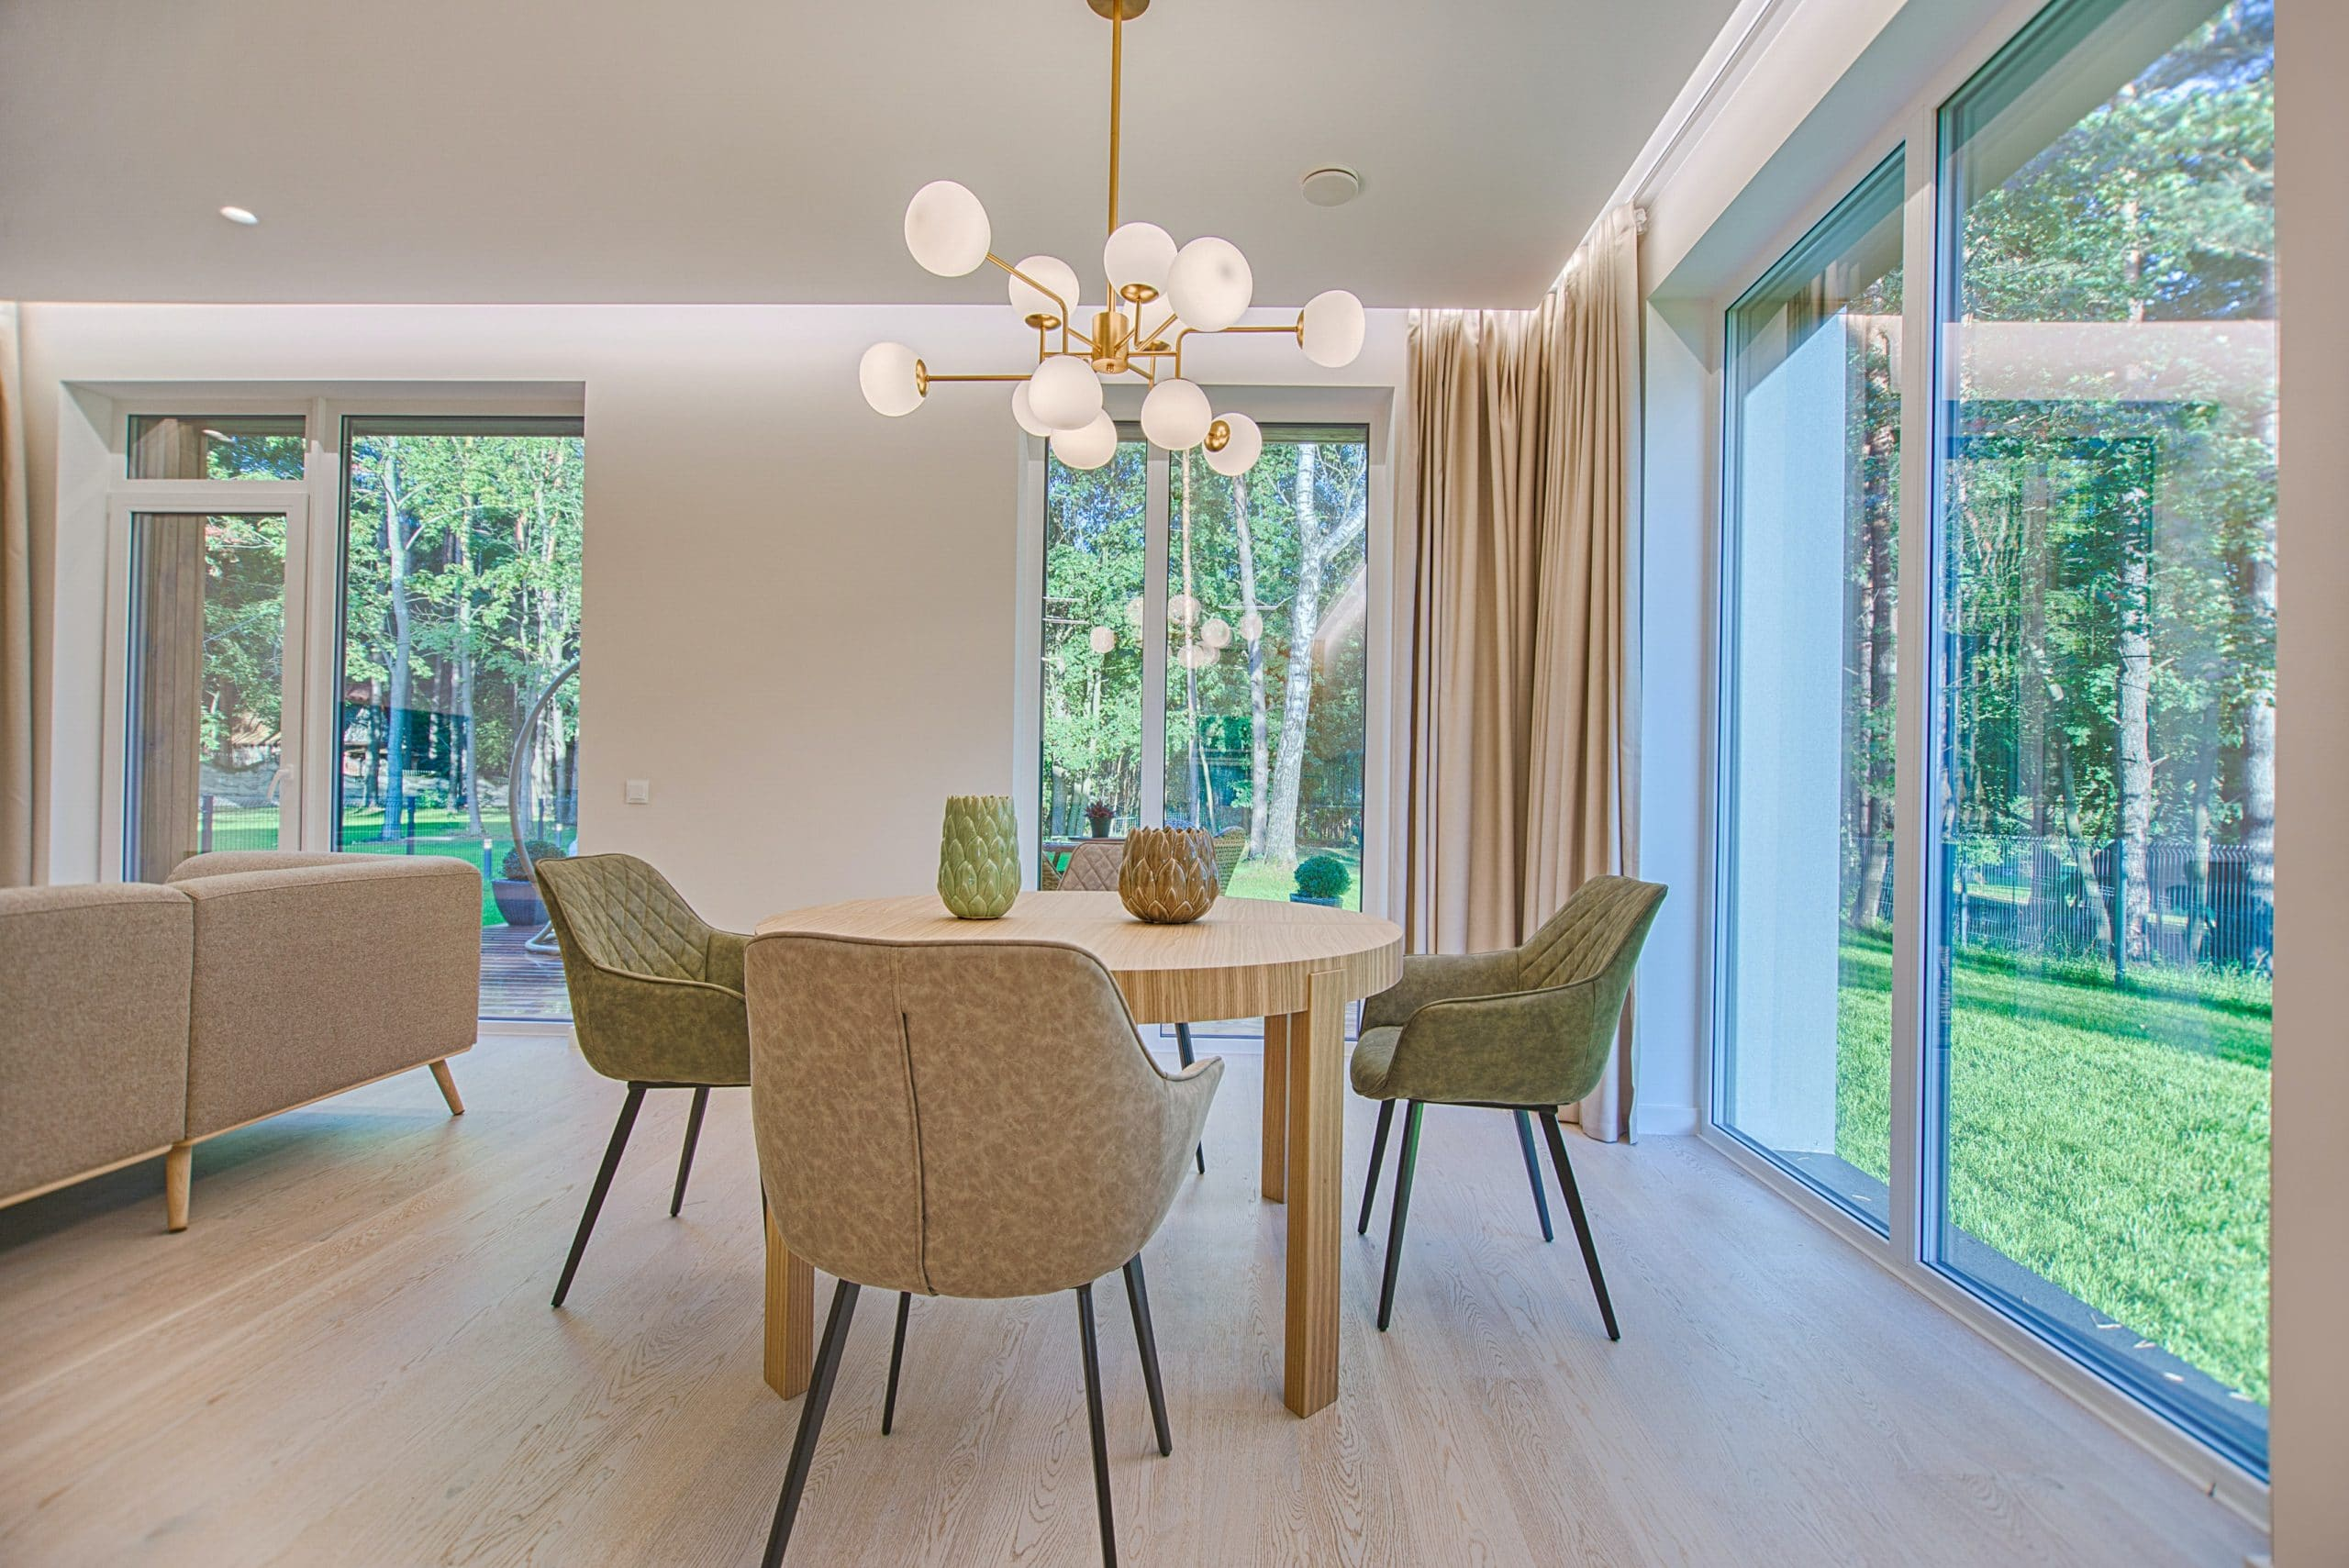 Planning a Whole Home Remodel: Know Where to Start